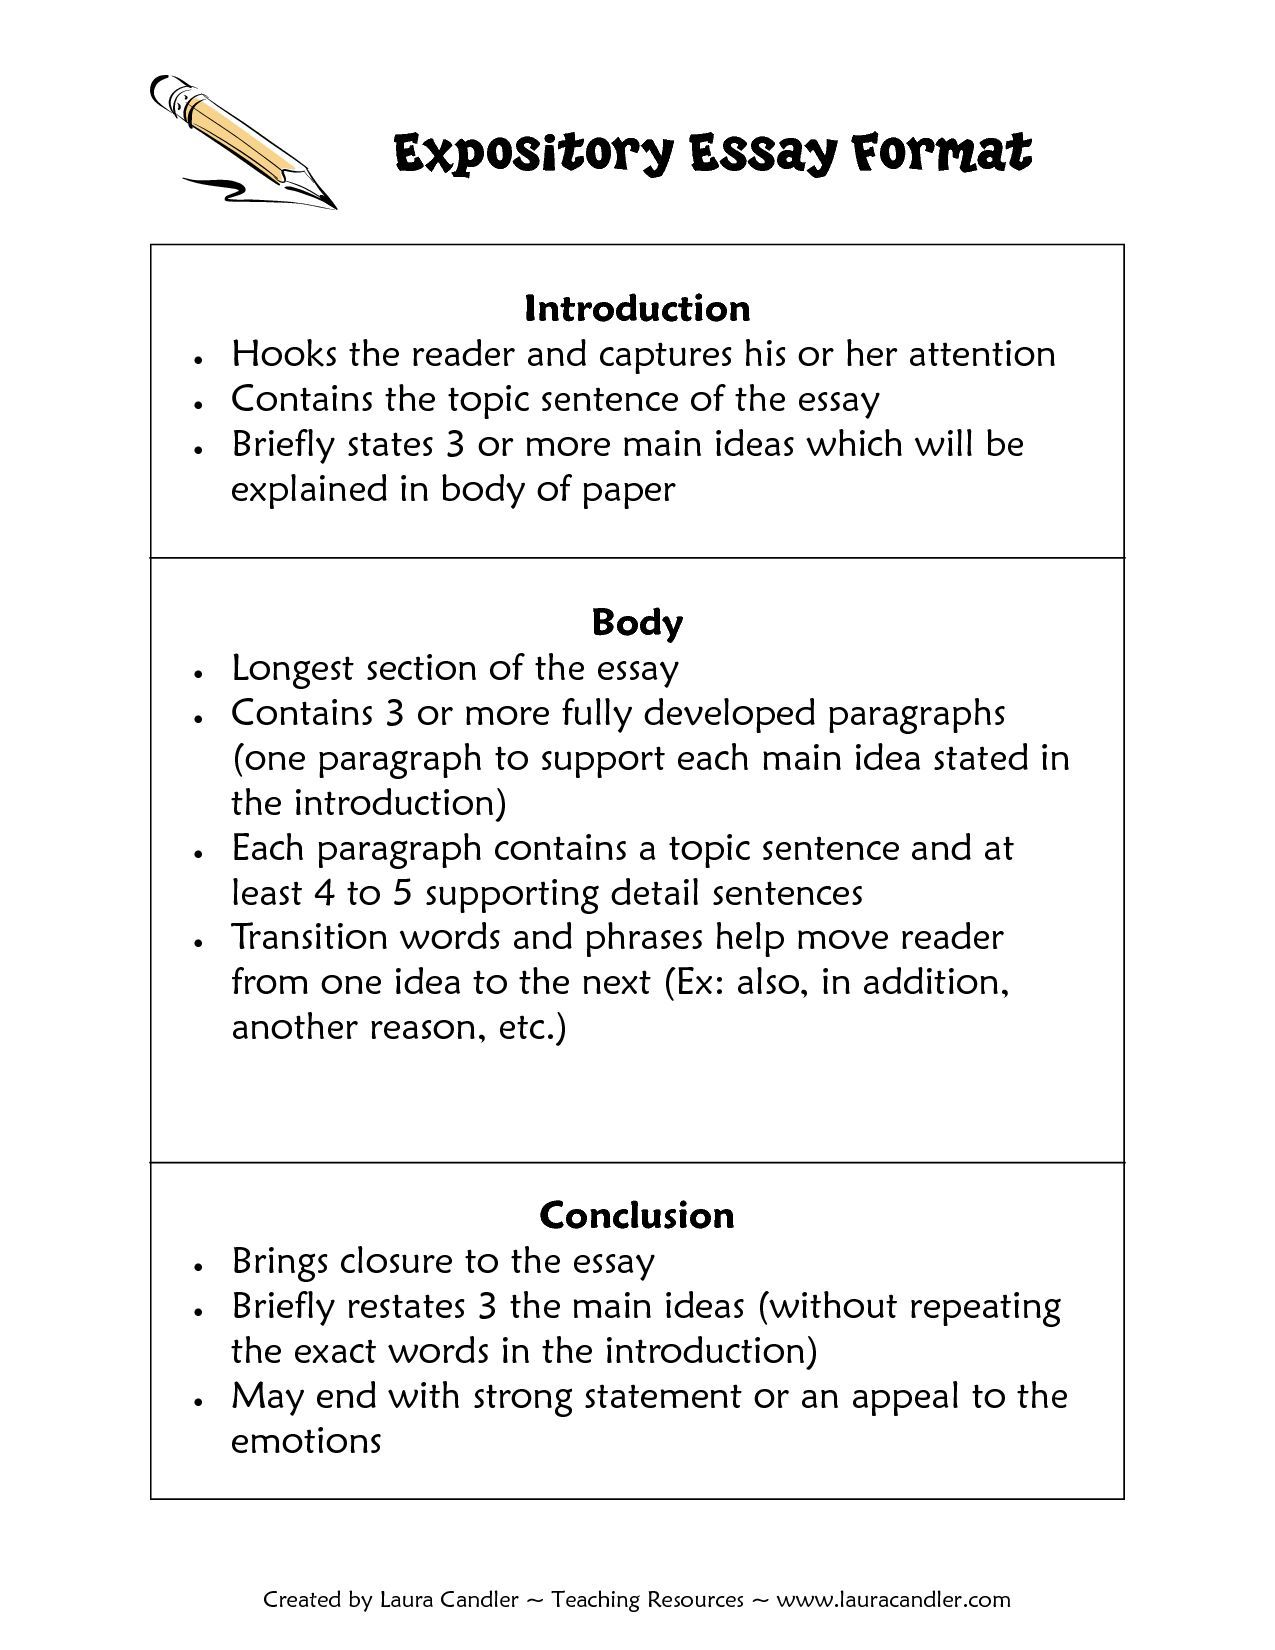 Thesi Statement Example Expository Essay Writing How To Write Your Dissertation Conclusion